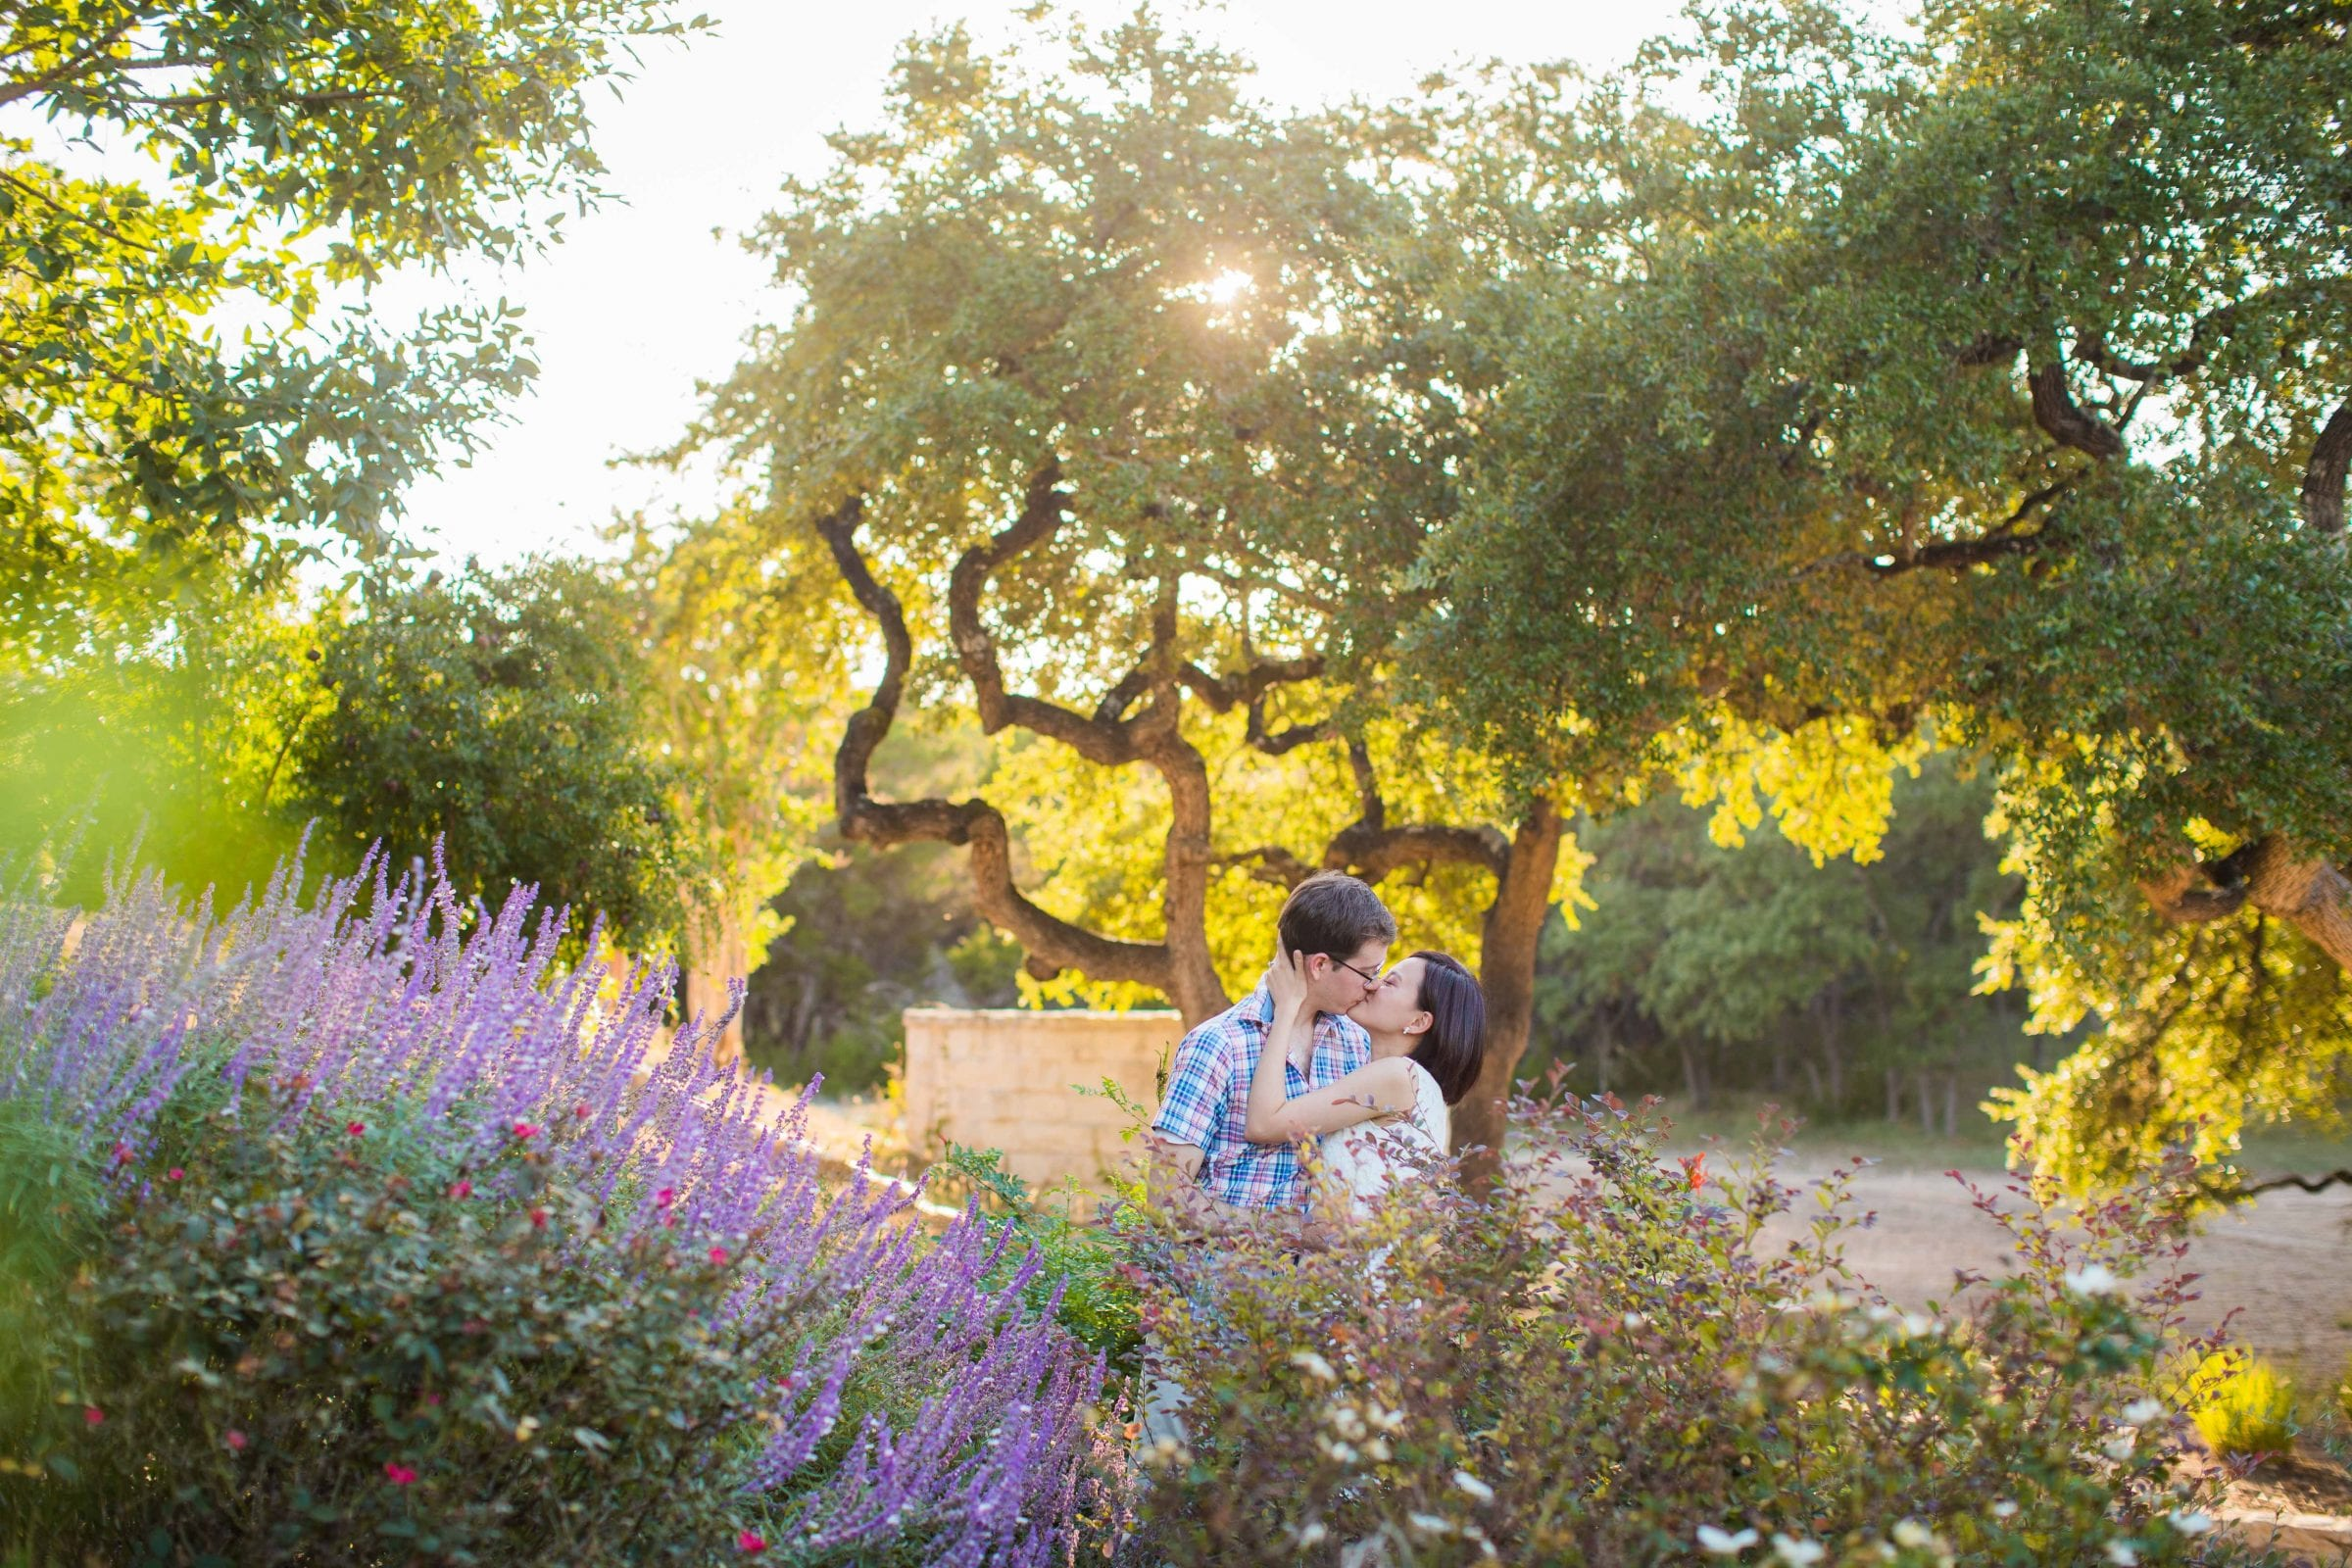 Josh and Tina engagement session at Kendall plantation kiss in the garden